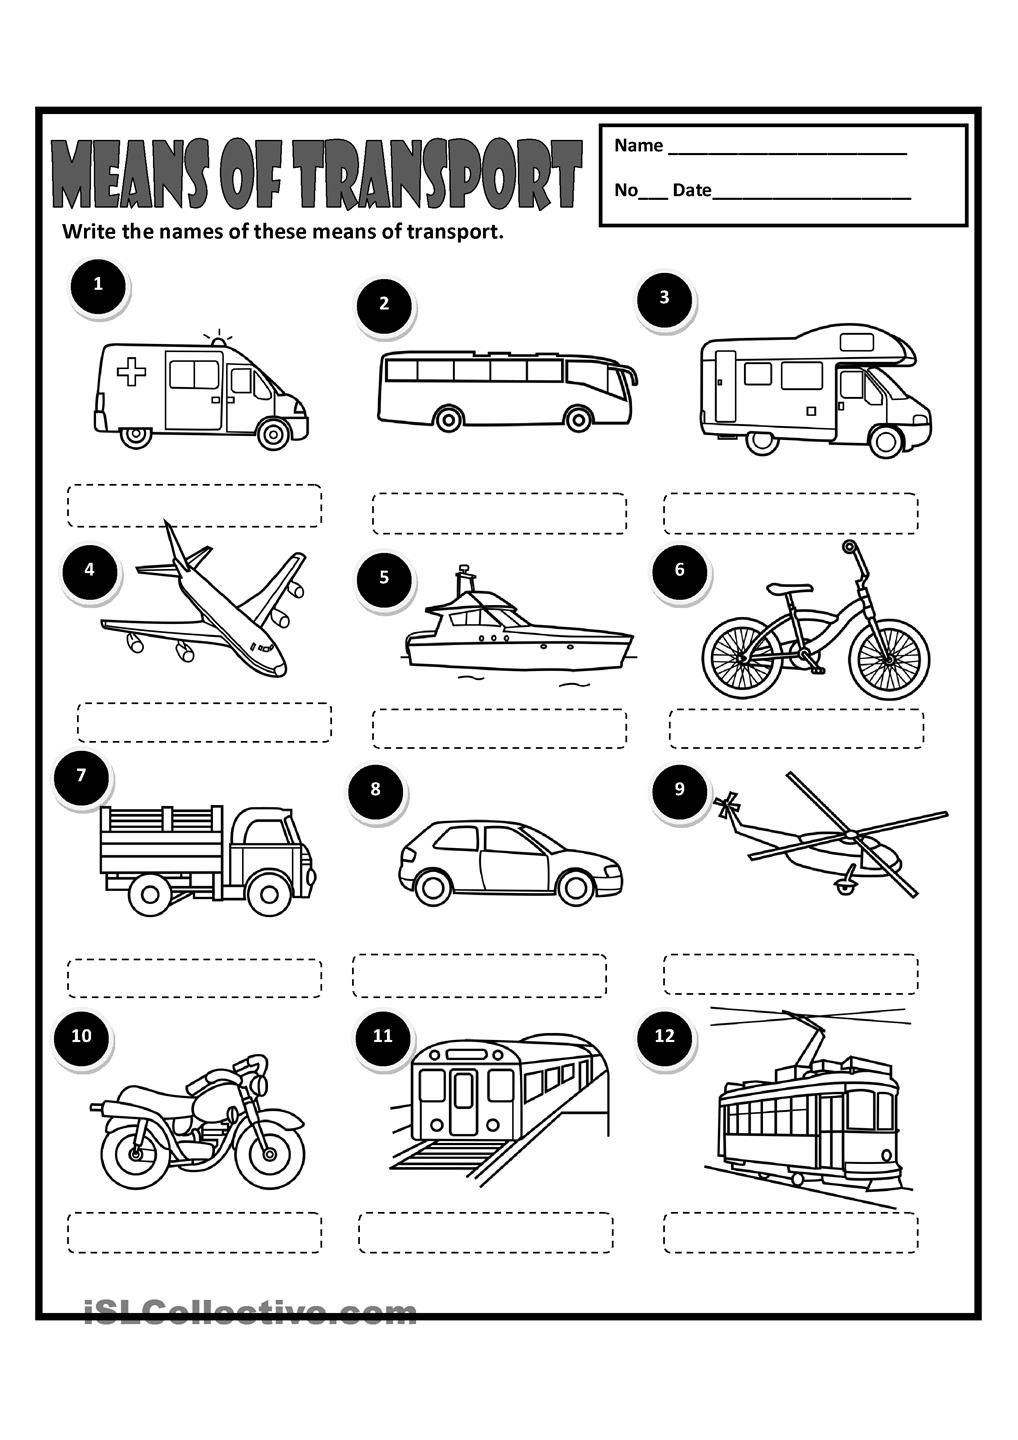 Workbooks teach english to spanish speakers worksheets : MEANS OF TRANSPORT | EDU | Pinterest | English, Worksheets and ...